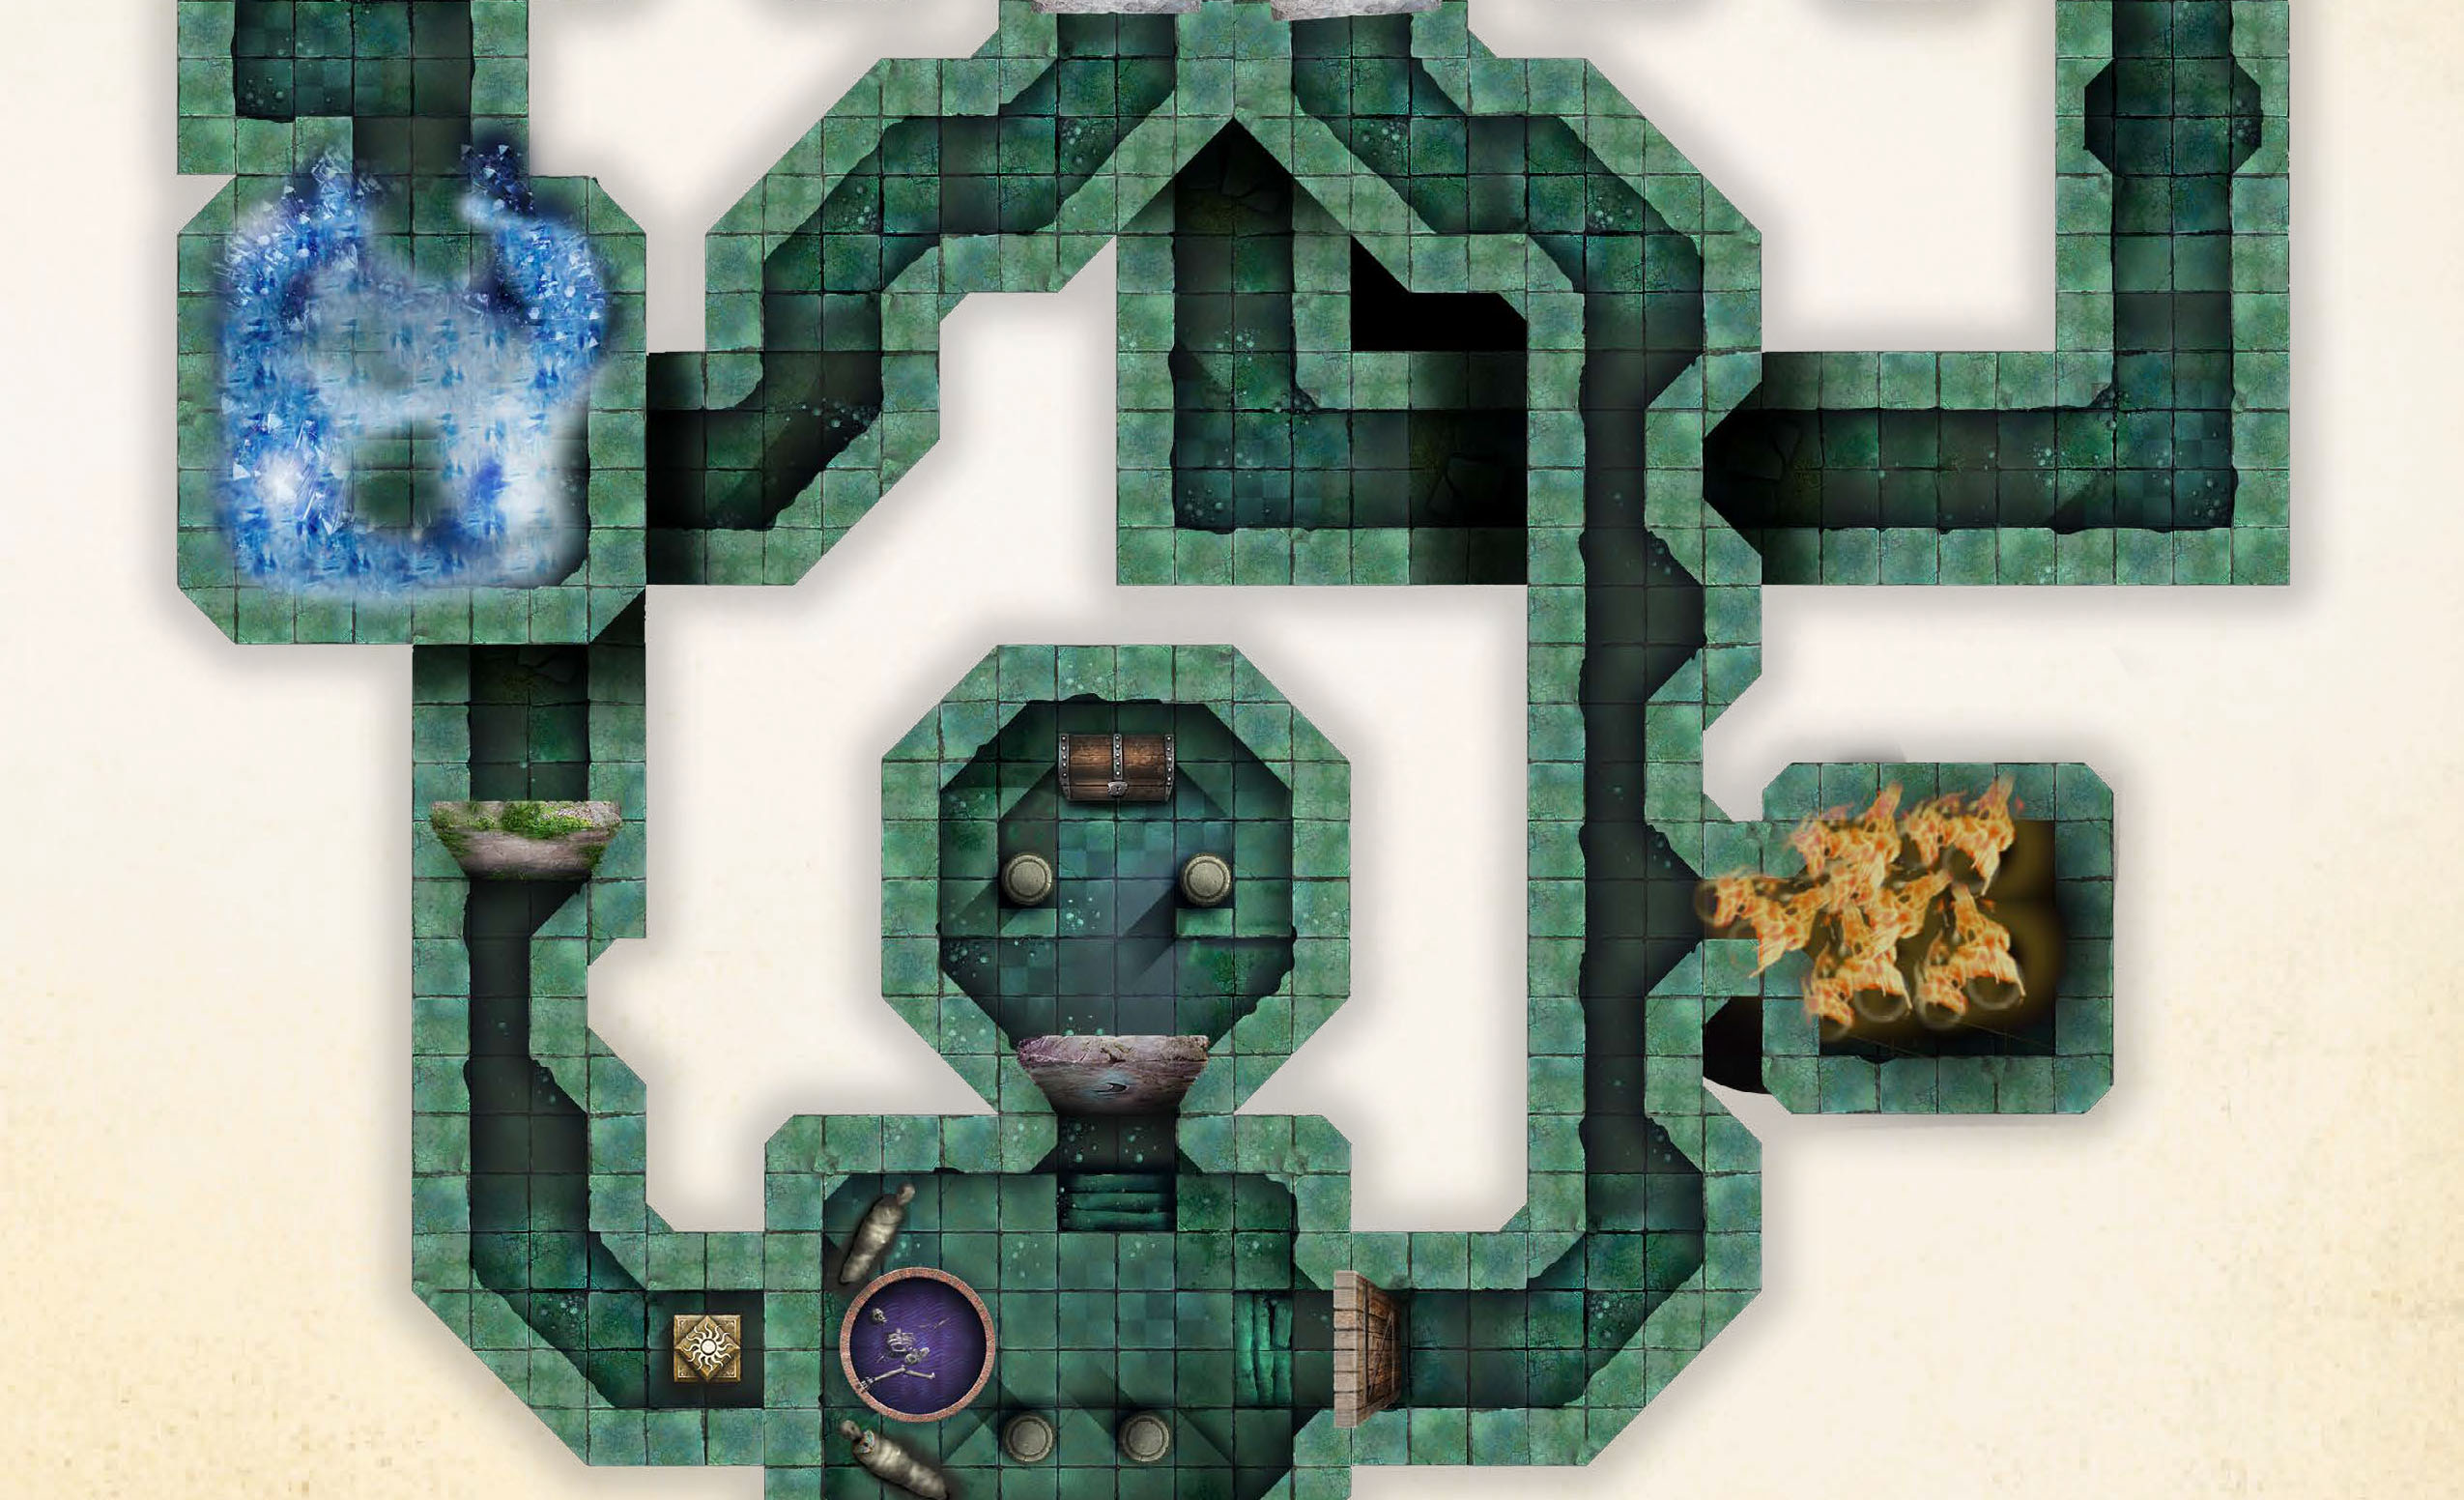 3 Things That Make A Great Dungeon Crawl